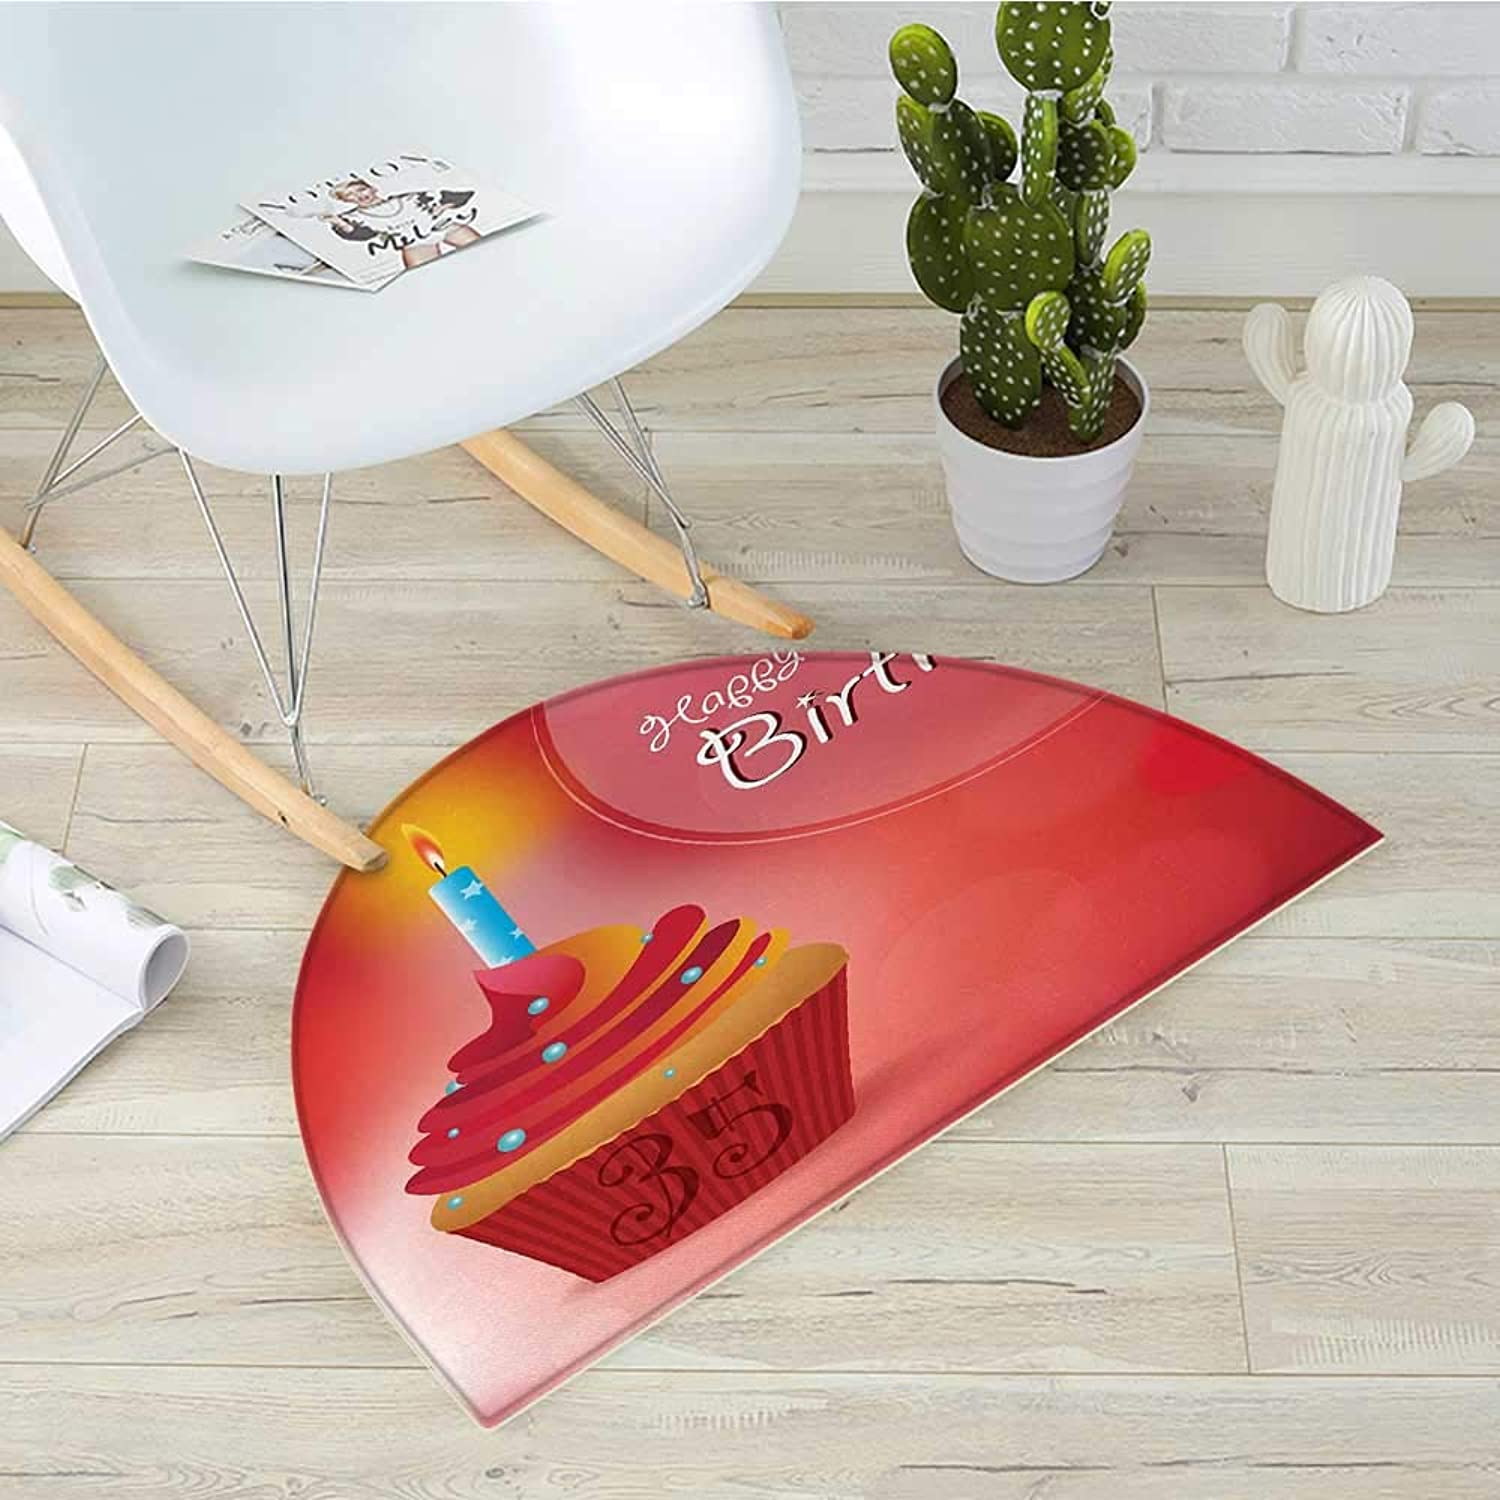 35th Birthday Half Round Door mats Cute Burning Candles on a Yummy Looking Cupcake with Stars and Dots Bathroom Mat H 43.3  xD 64.9  Red orange bluee